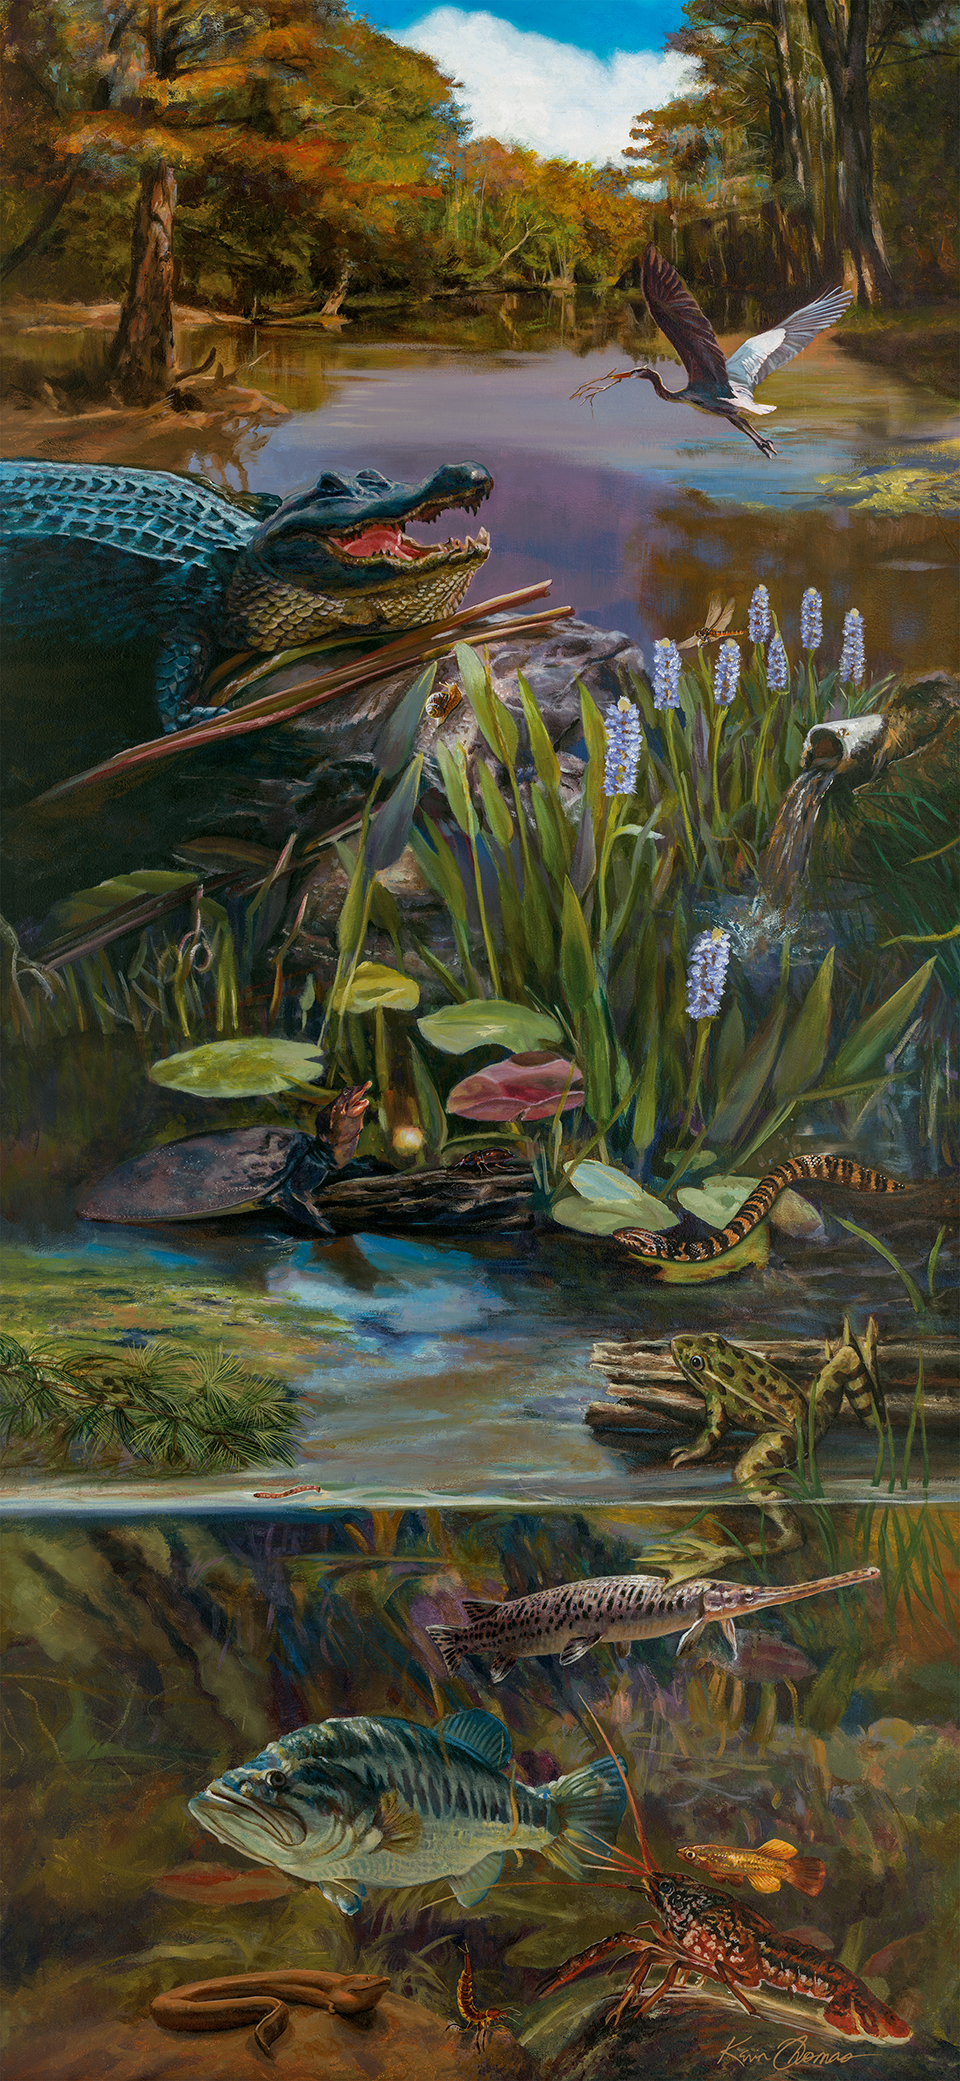 """""""Bio-accumulation mural"""" • E.O. Wilson Biophilia Center in Warren County, FL. This 4' x 9' acrylic on canvas painting depicts Florida wildlife and surrounding habitat. © KT"""